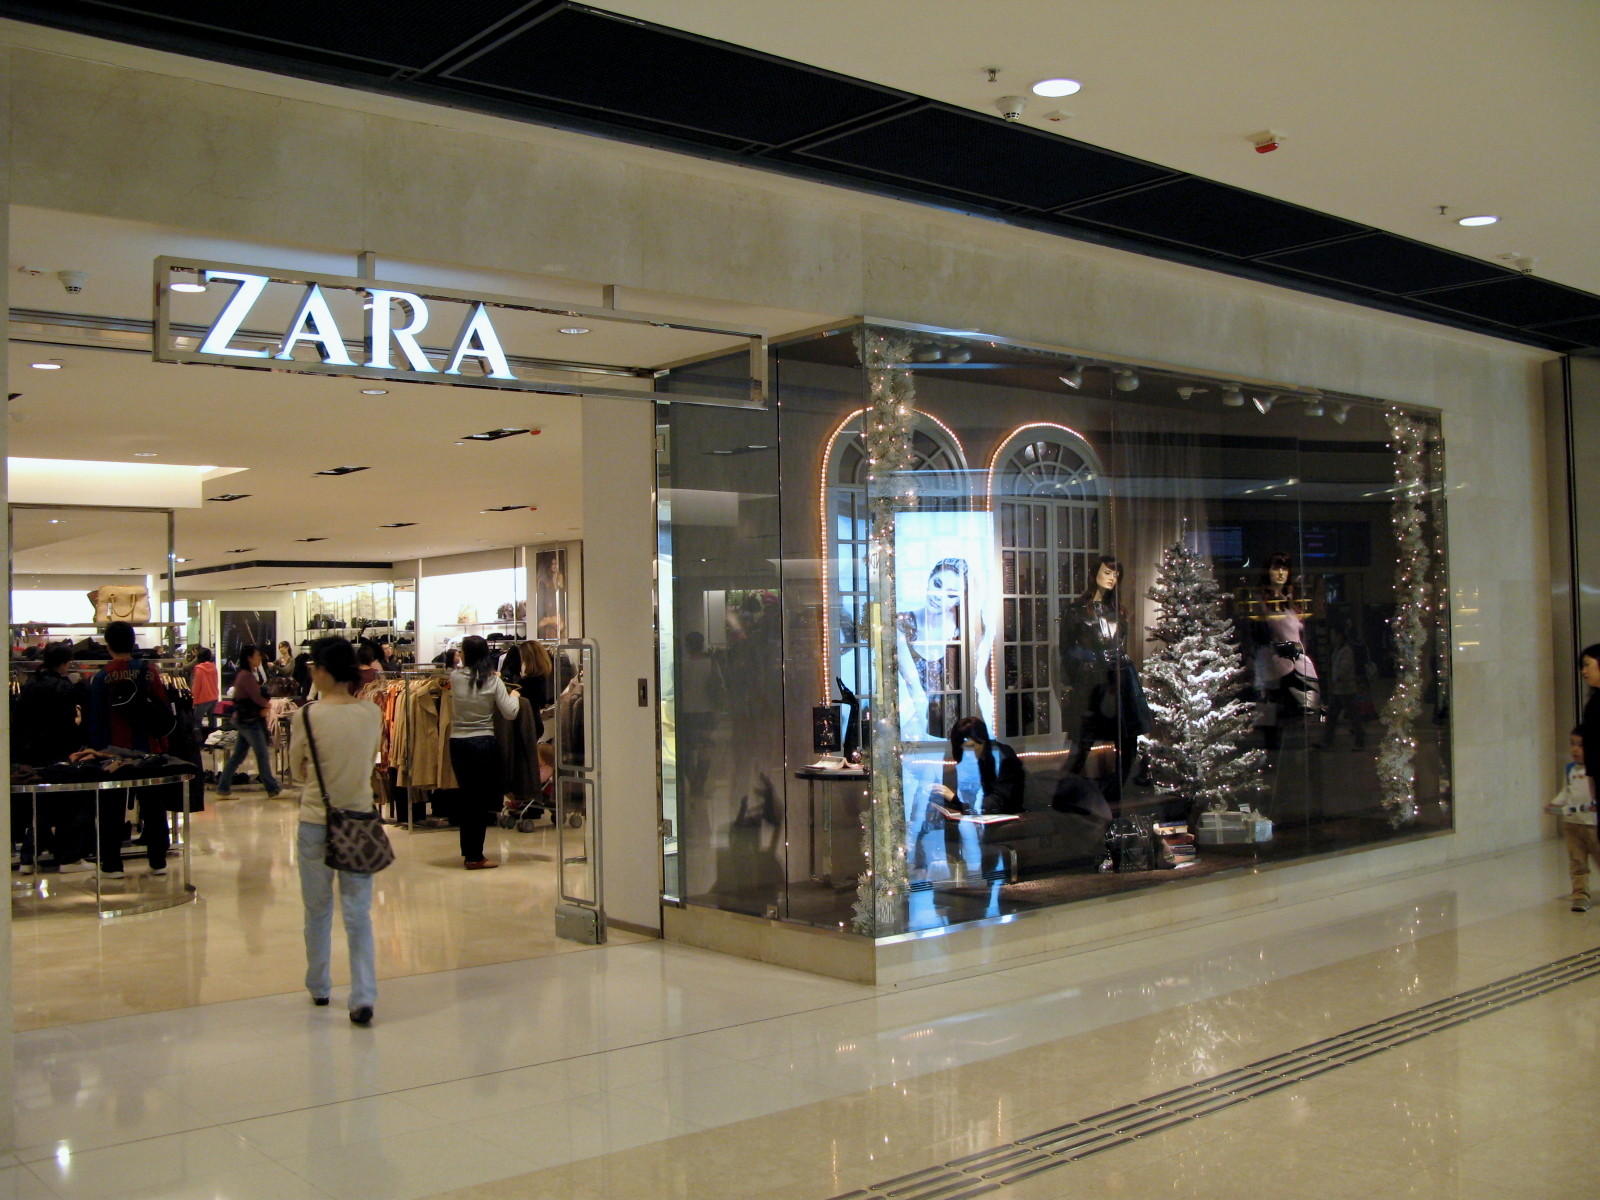 File:Ifc ZARA 20071110.jpg - Wikipedia, the free encyclopedia